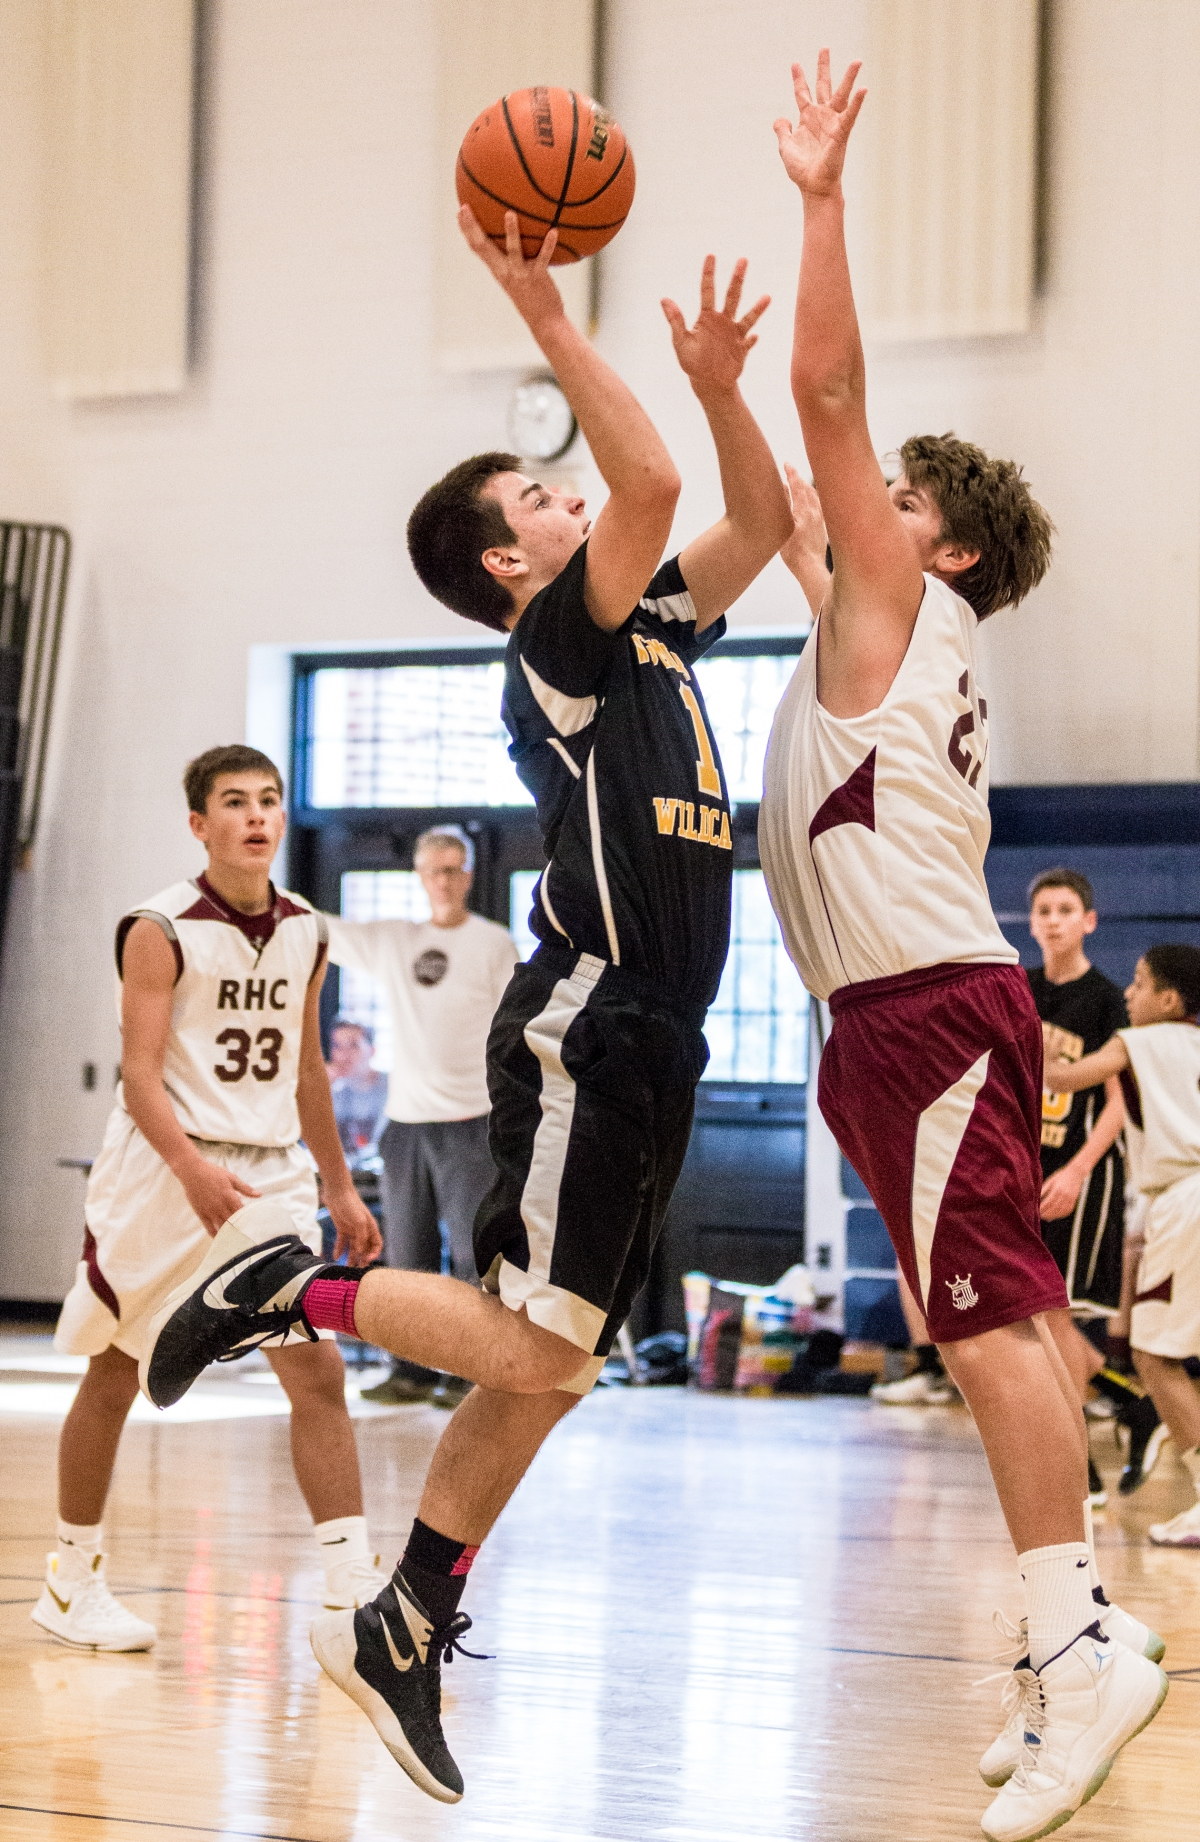 8th Grade Basketball: West Milford @ Ridgewood, NJ